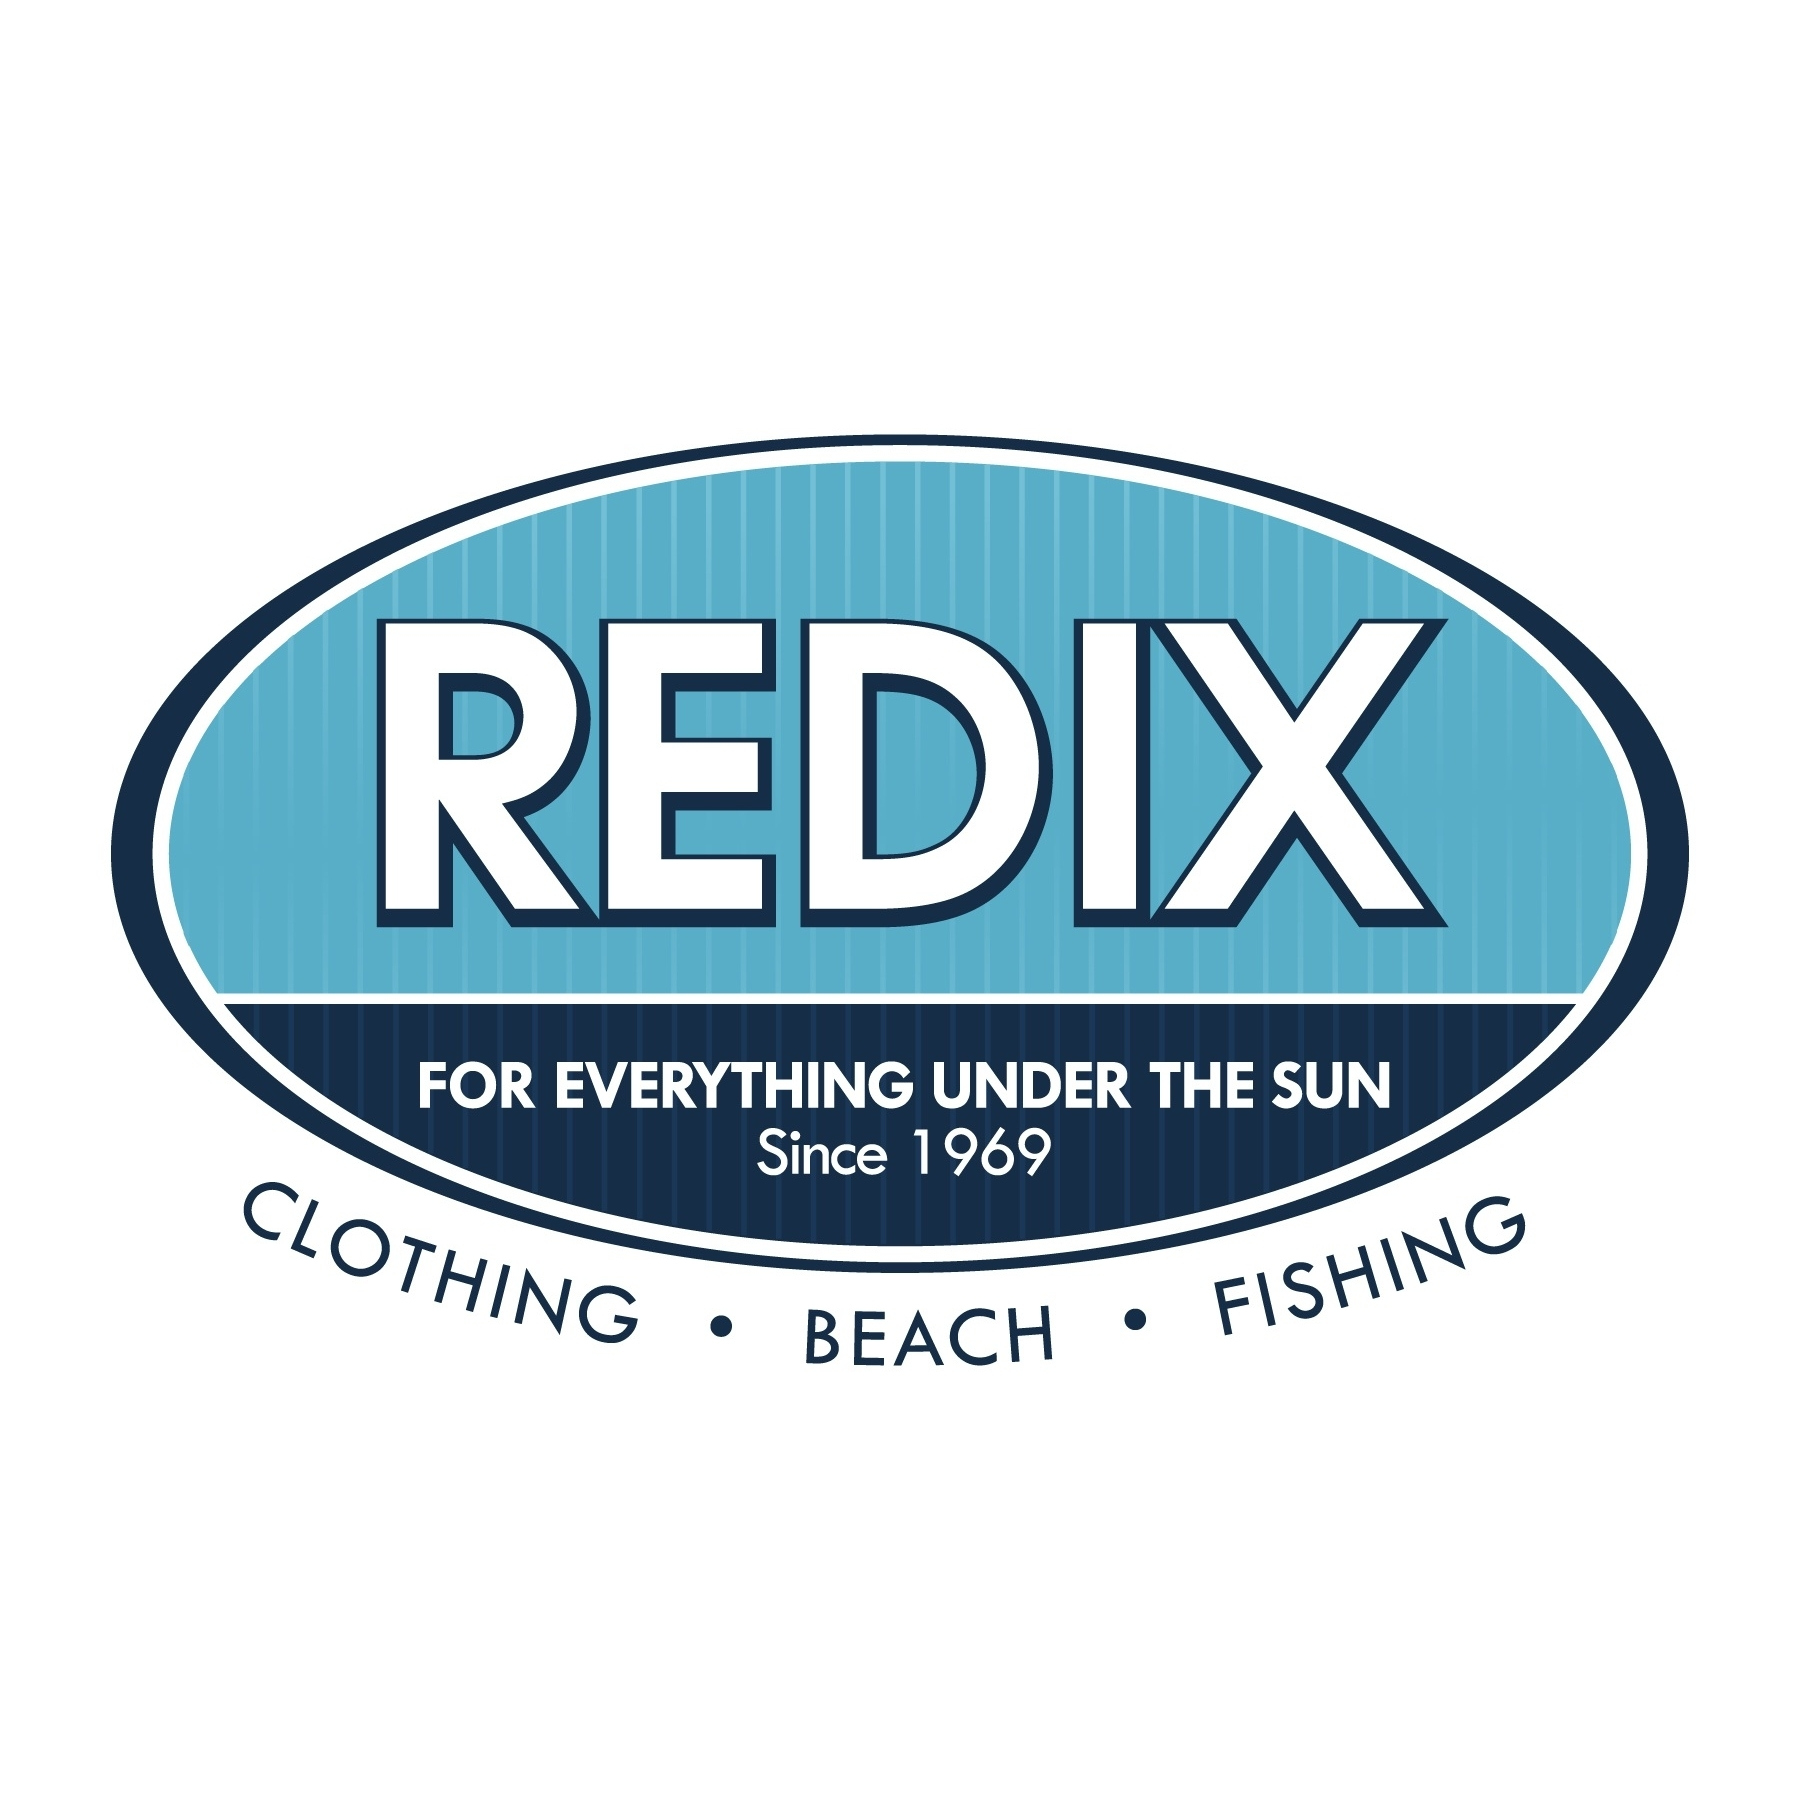 redix store - Wrightsville Bch, NC - Department Stores